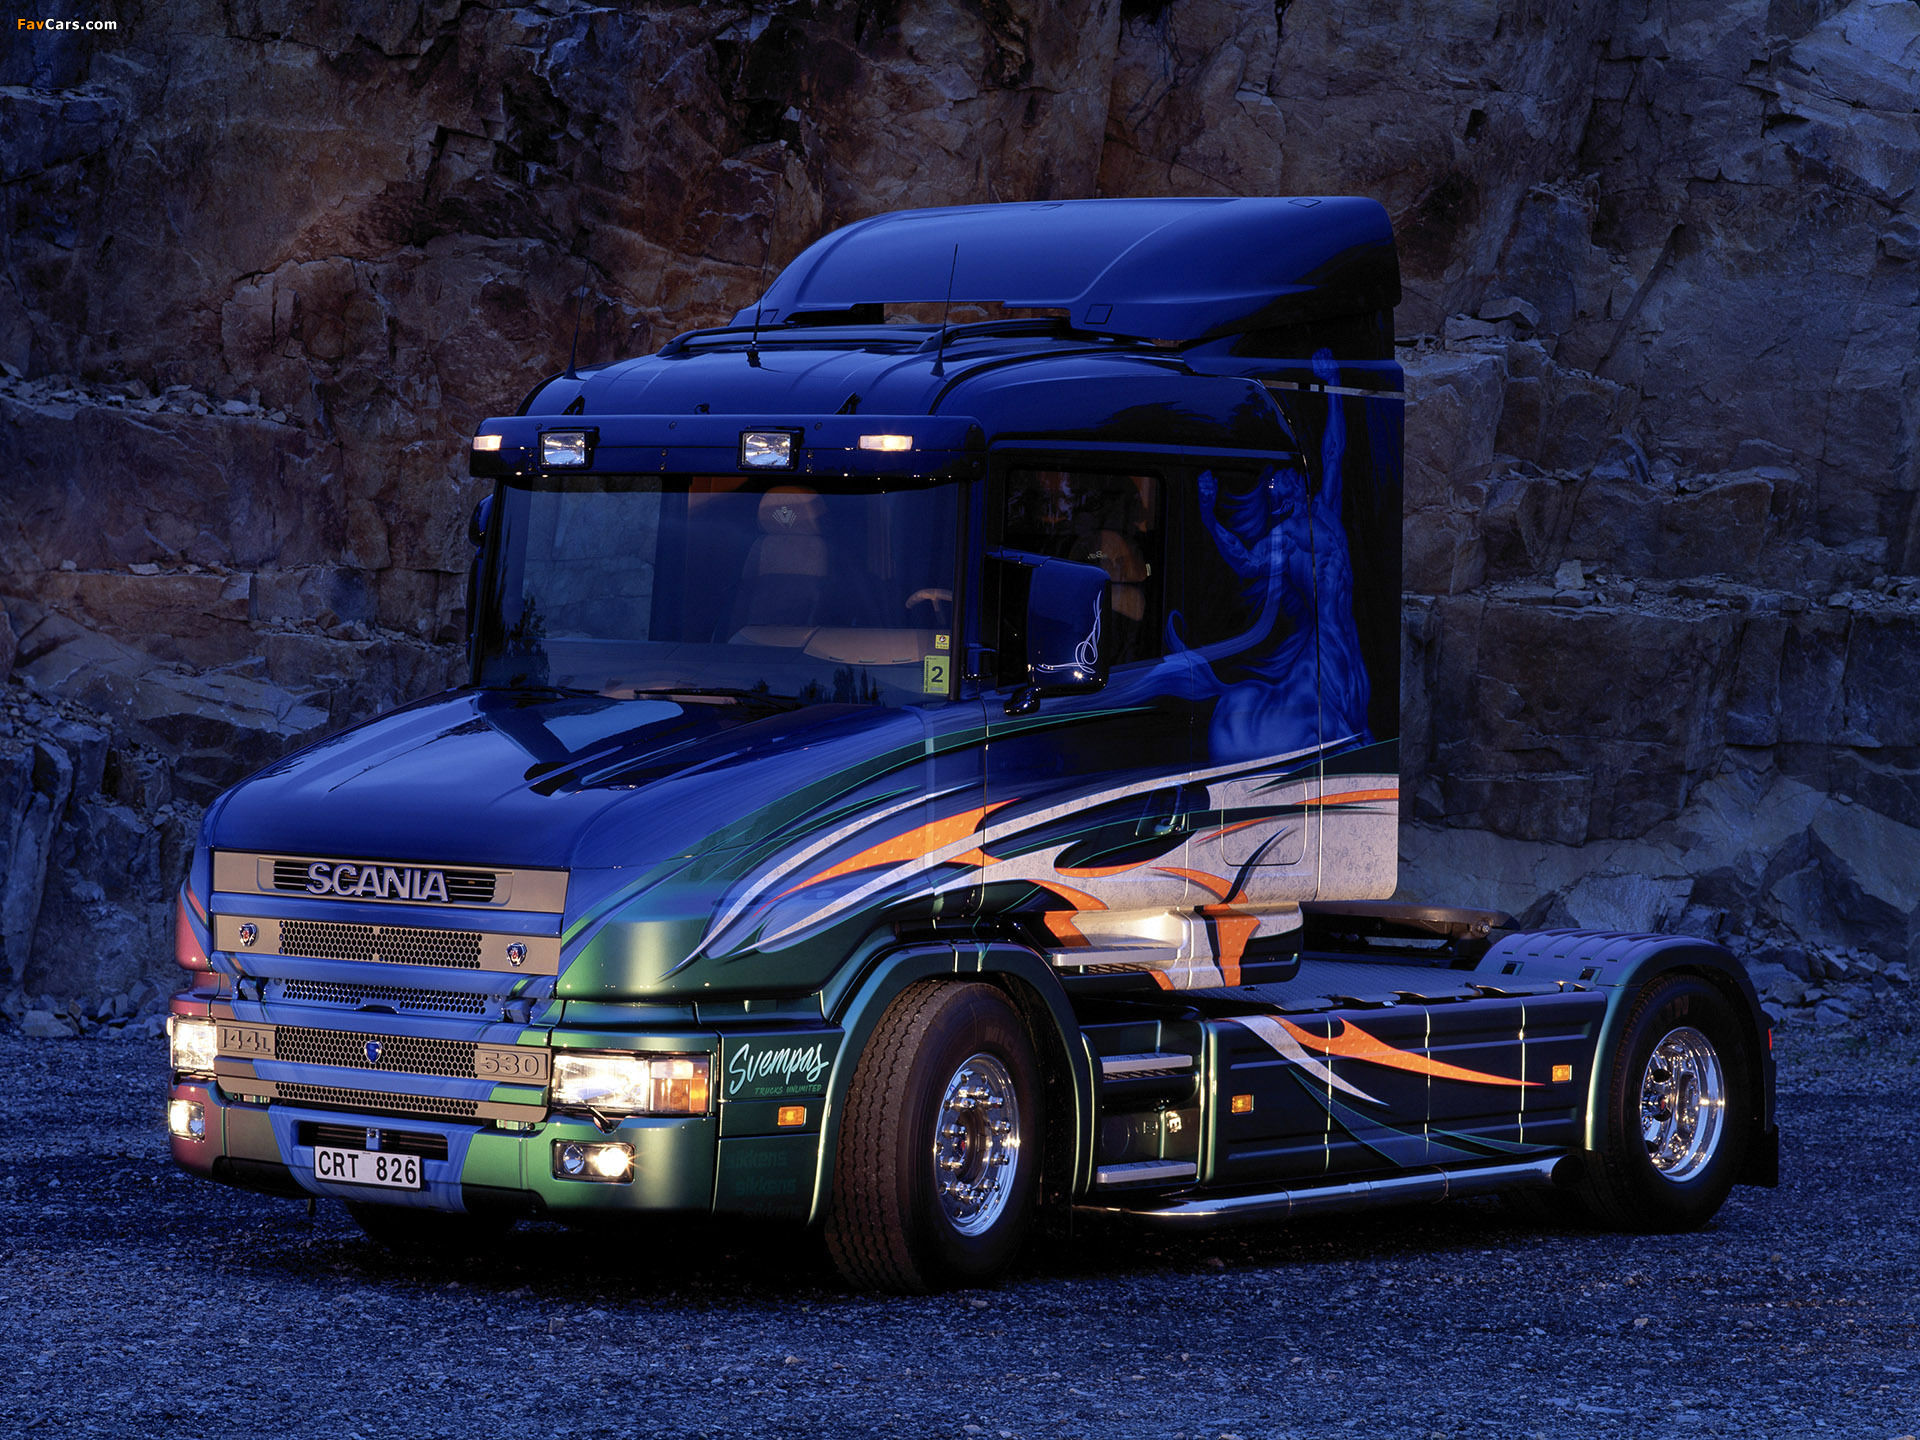 Scania T144 530 4x2 by Svempas 2005 wallpapers (1920 x 1440)